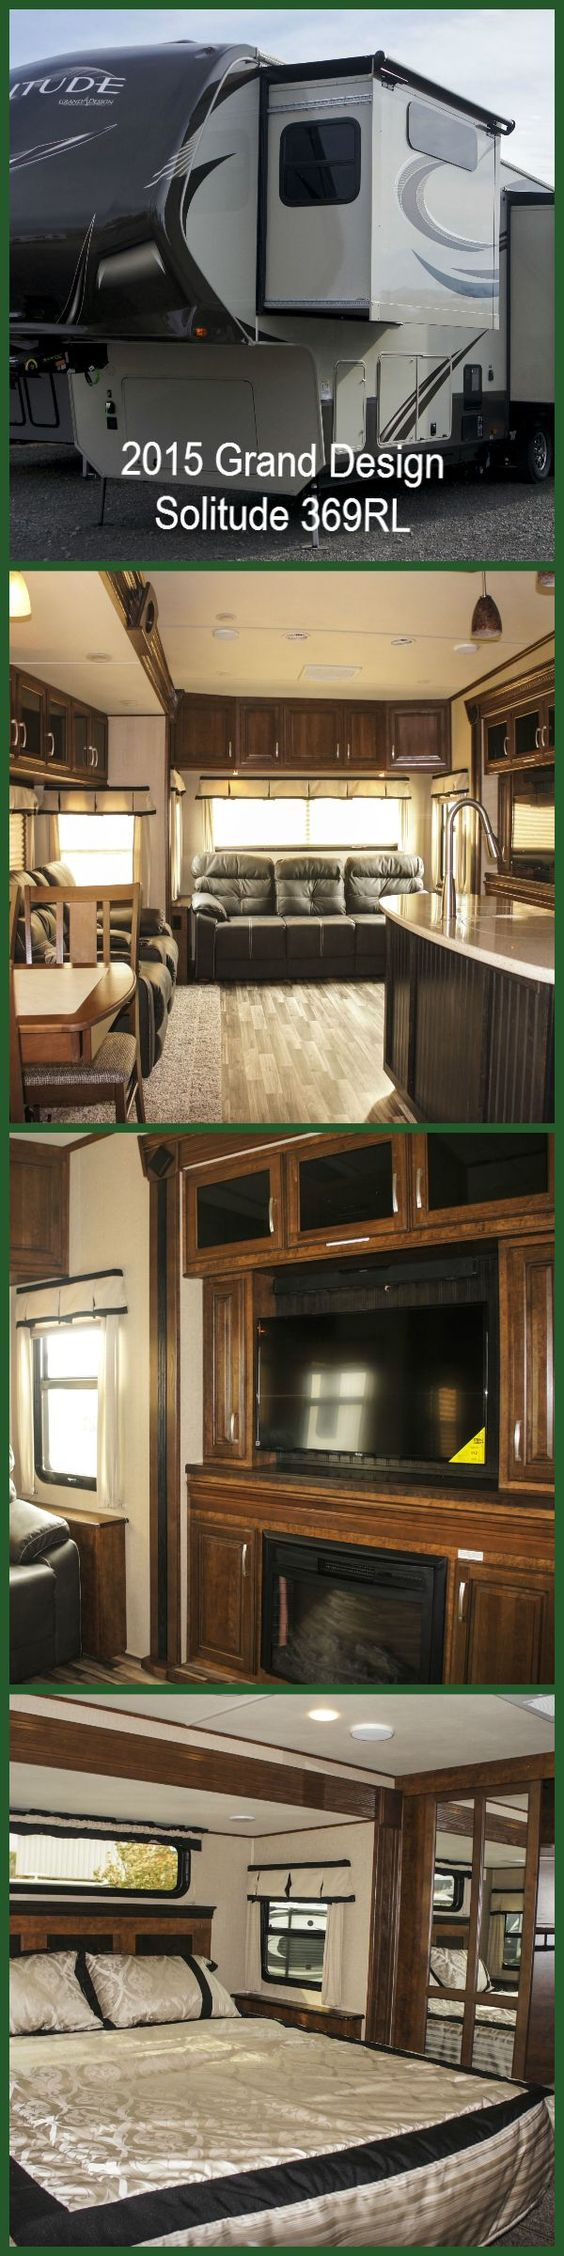 Here's a glimpse our first Grand Design fifth wheel! Click to see all pictures.